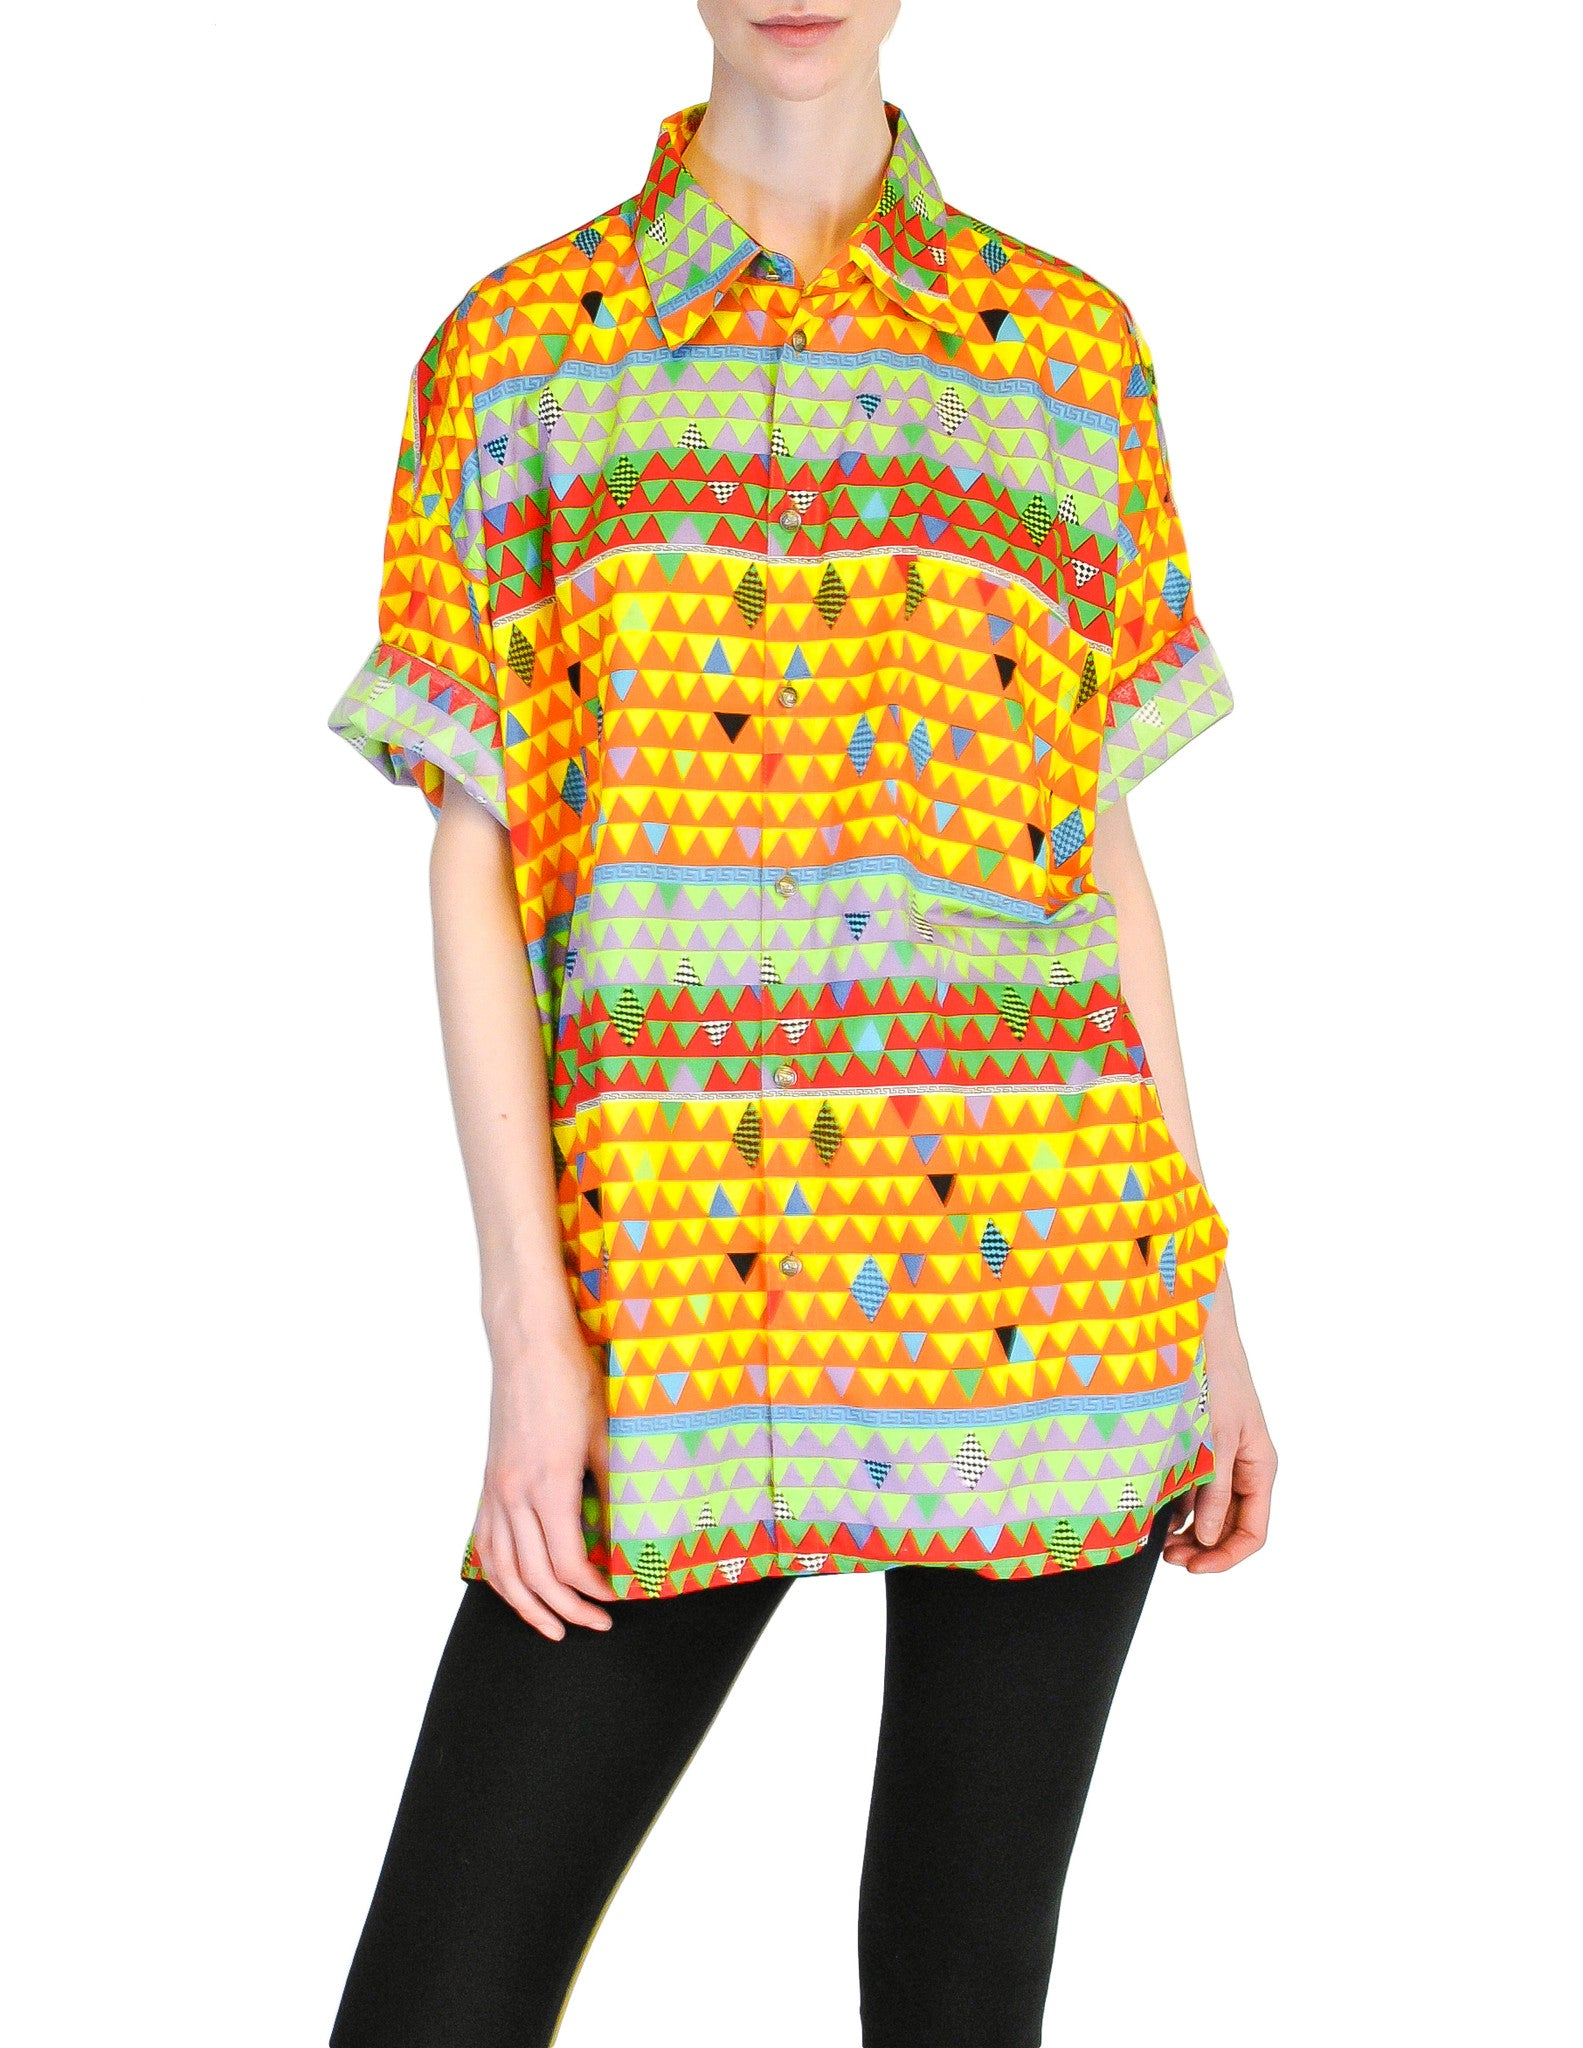 Versace Vintage Colorful Triangle Graphic Print Button Up Shirt - Amarcord Vintage Fashion  - 1